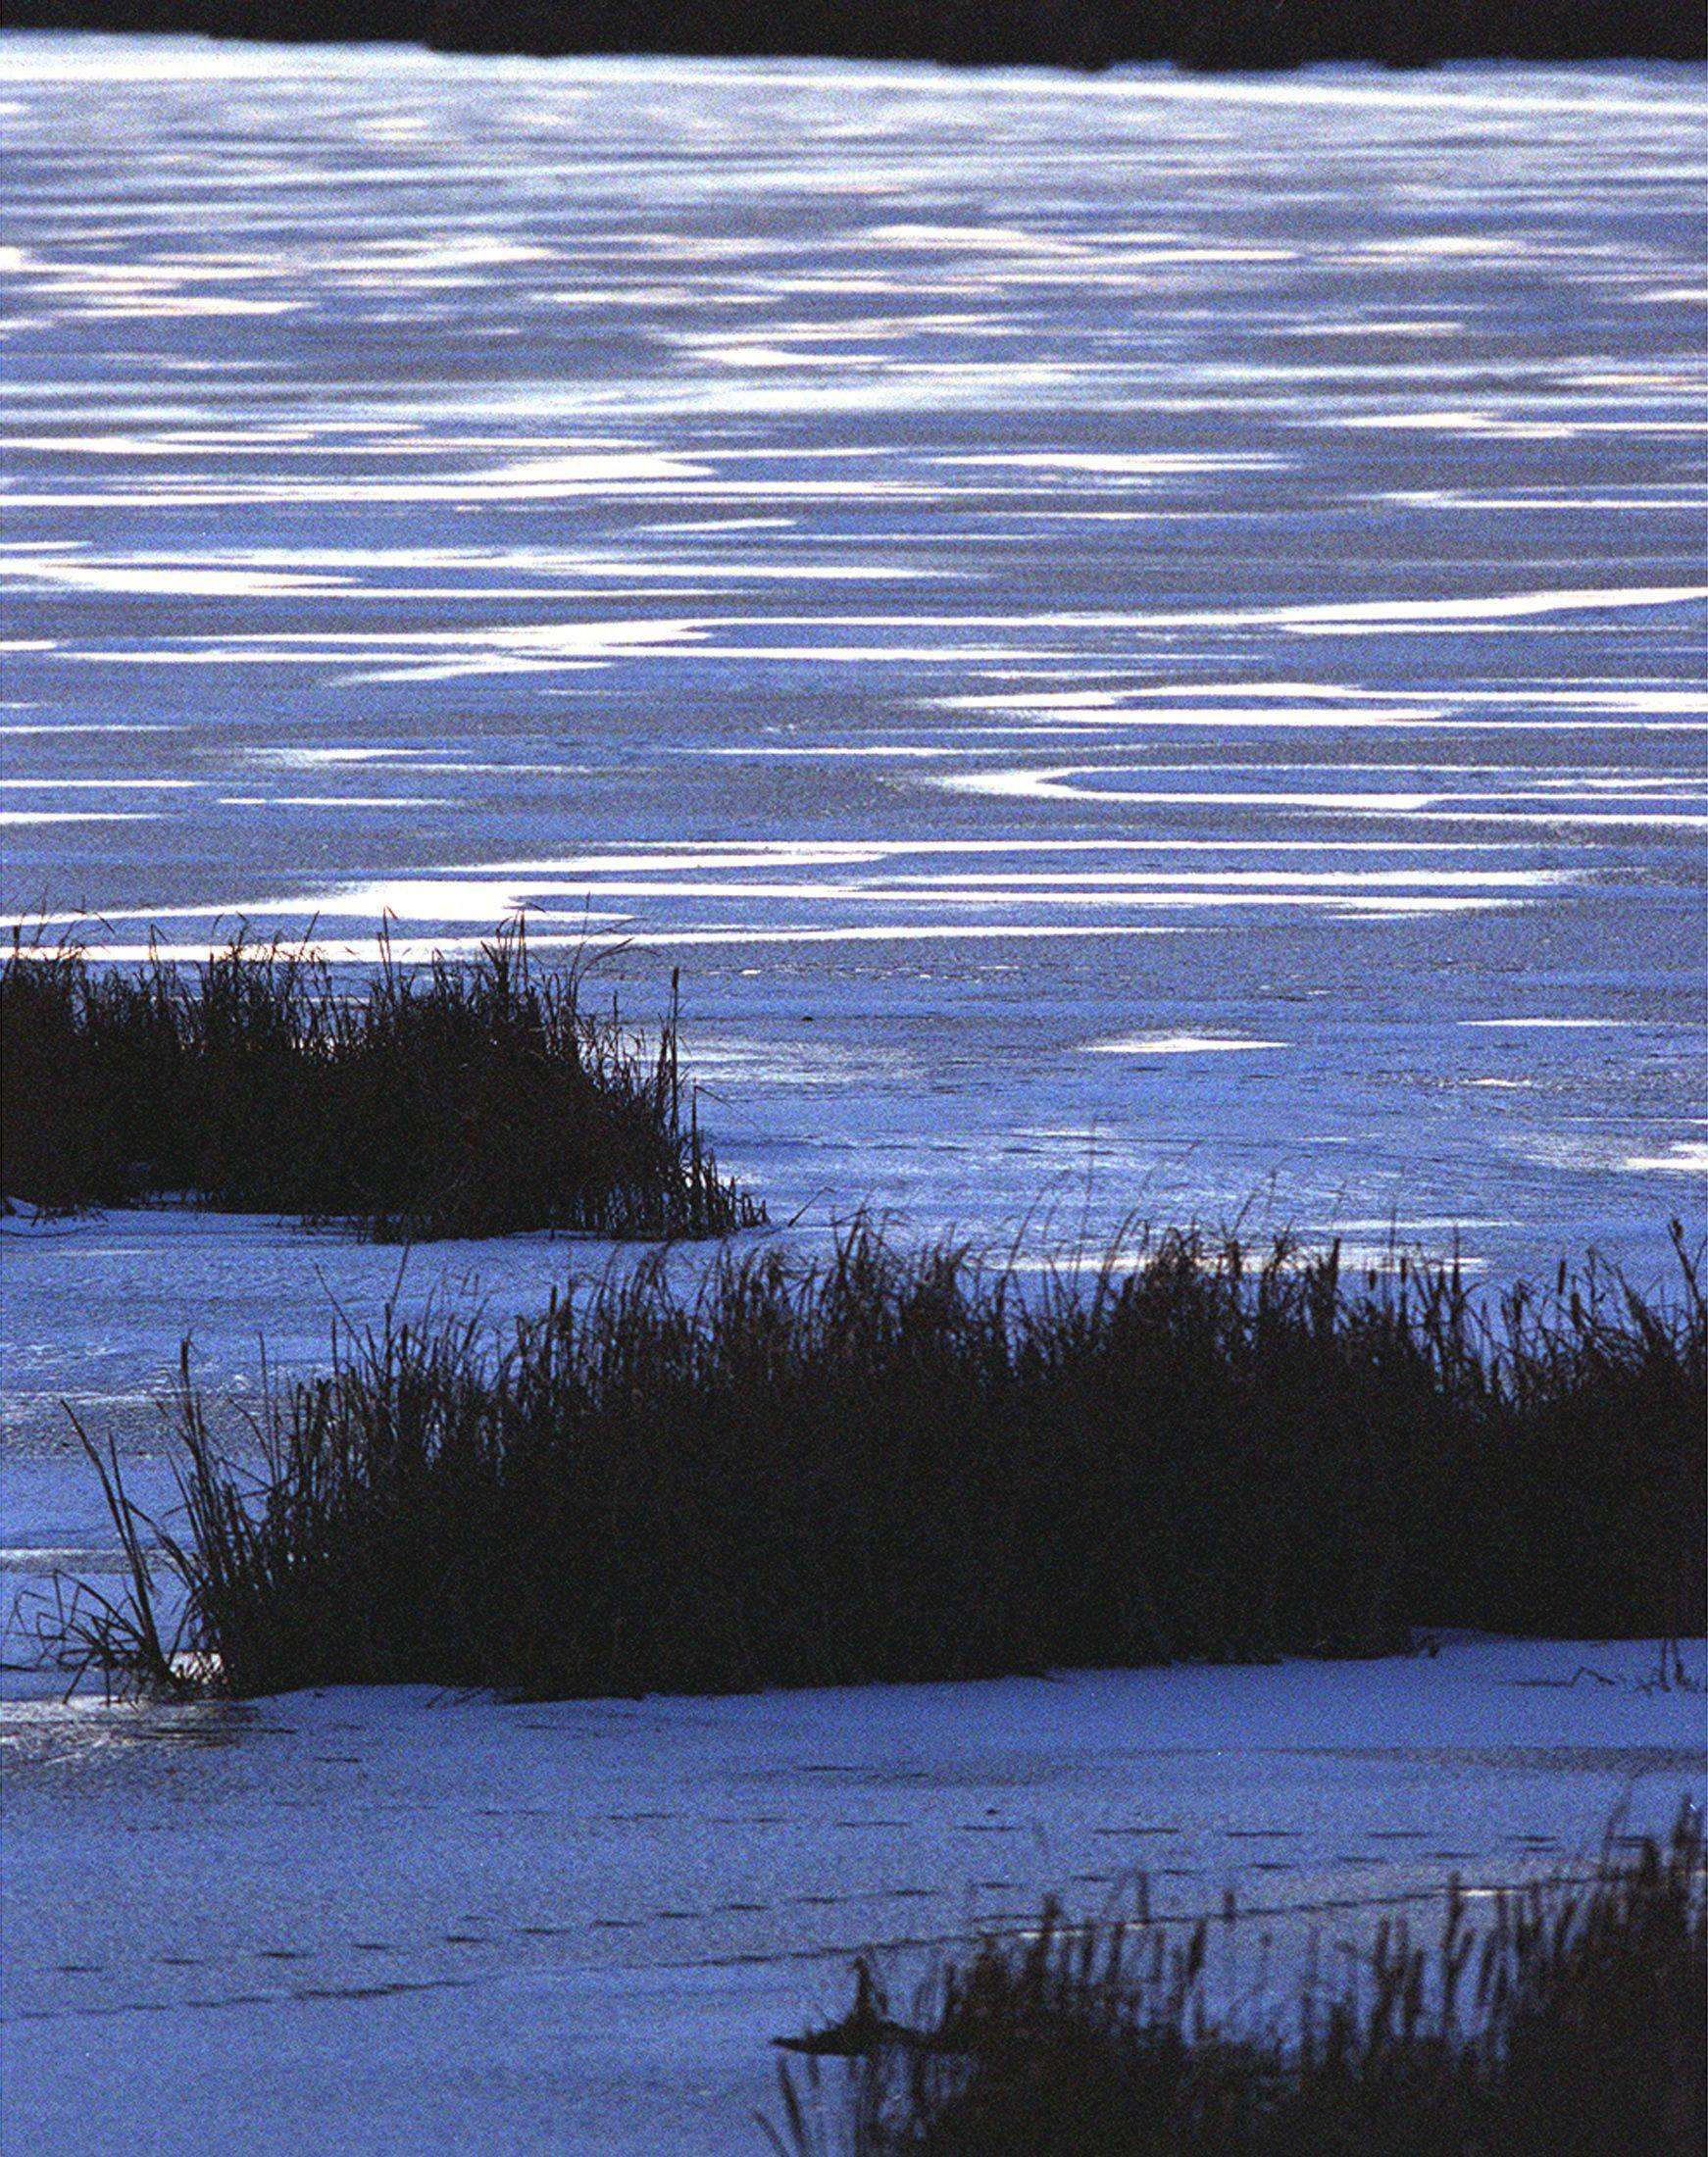 The snow covered ice covering at Nelson Lake Marsh takes on a bluish hue with white highlights as the sun sets on a December evening. Small animal tracks can be seen in bottom of frame.